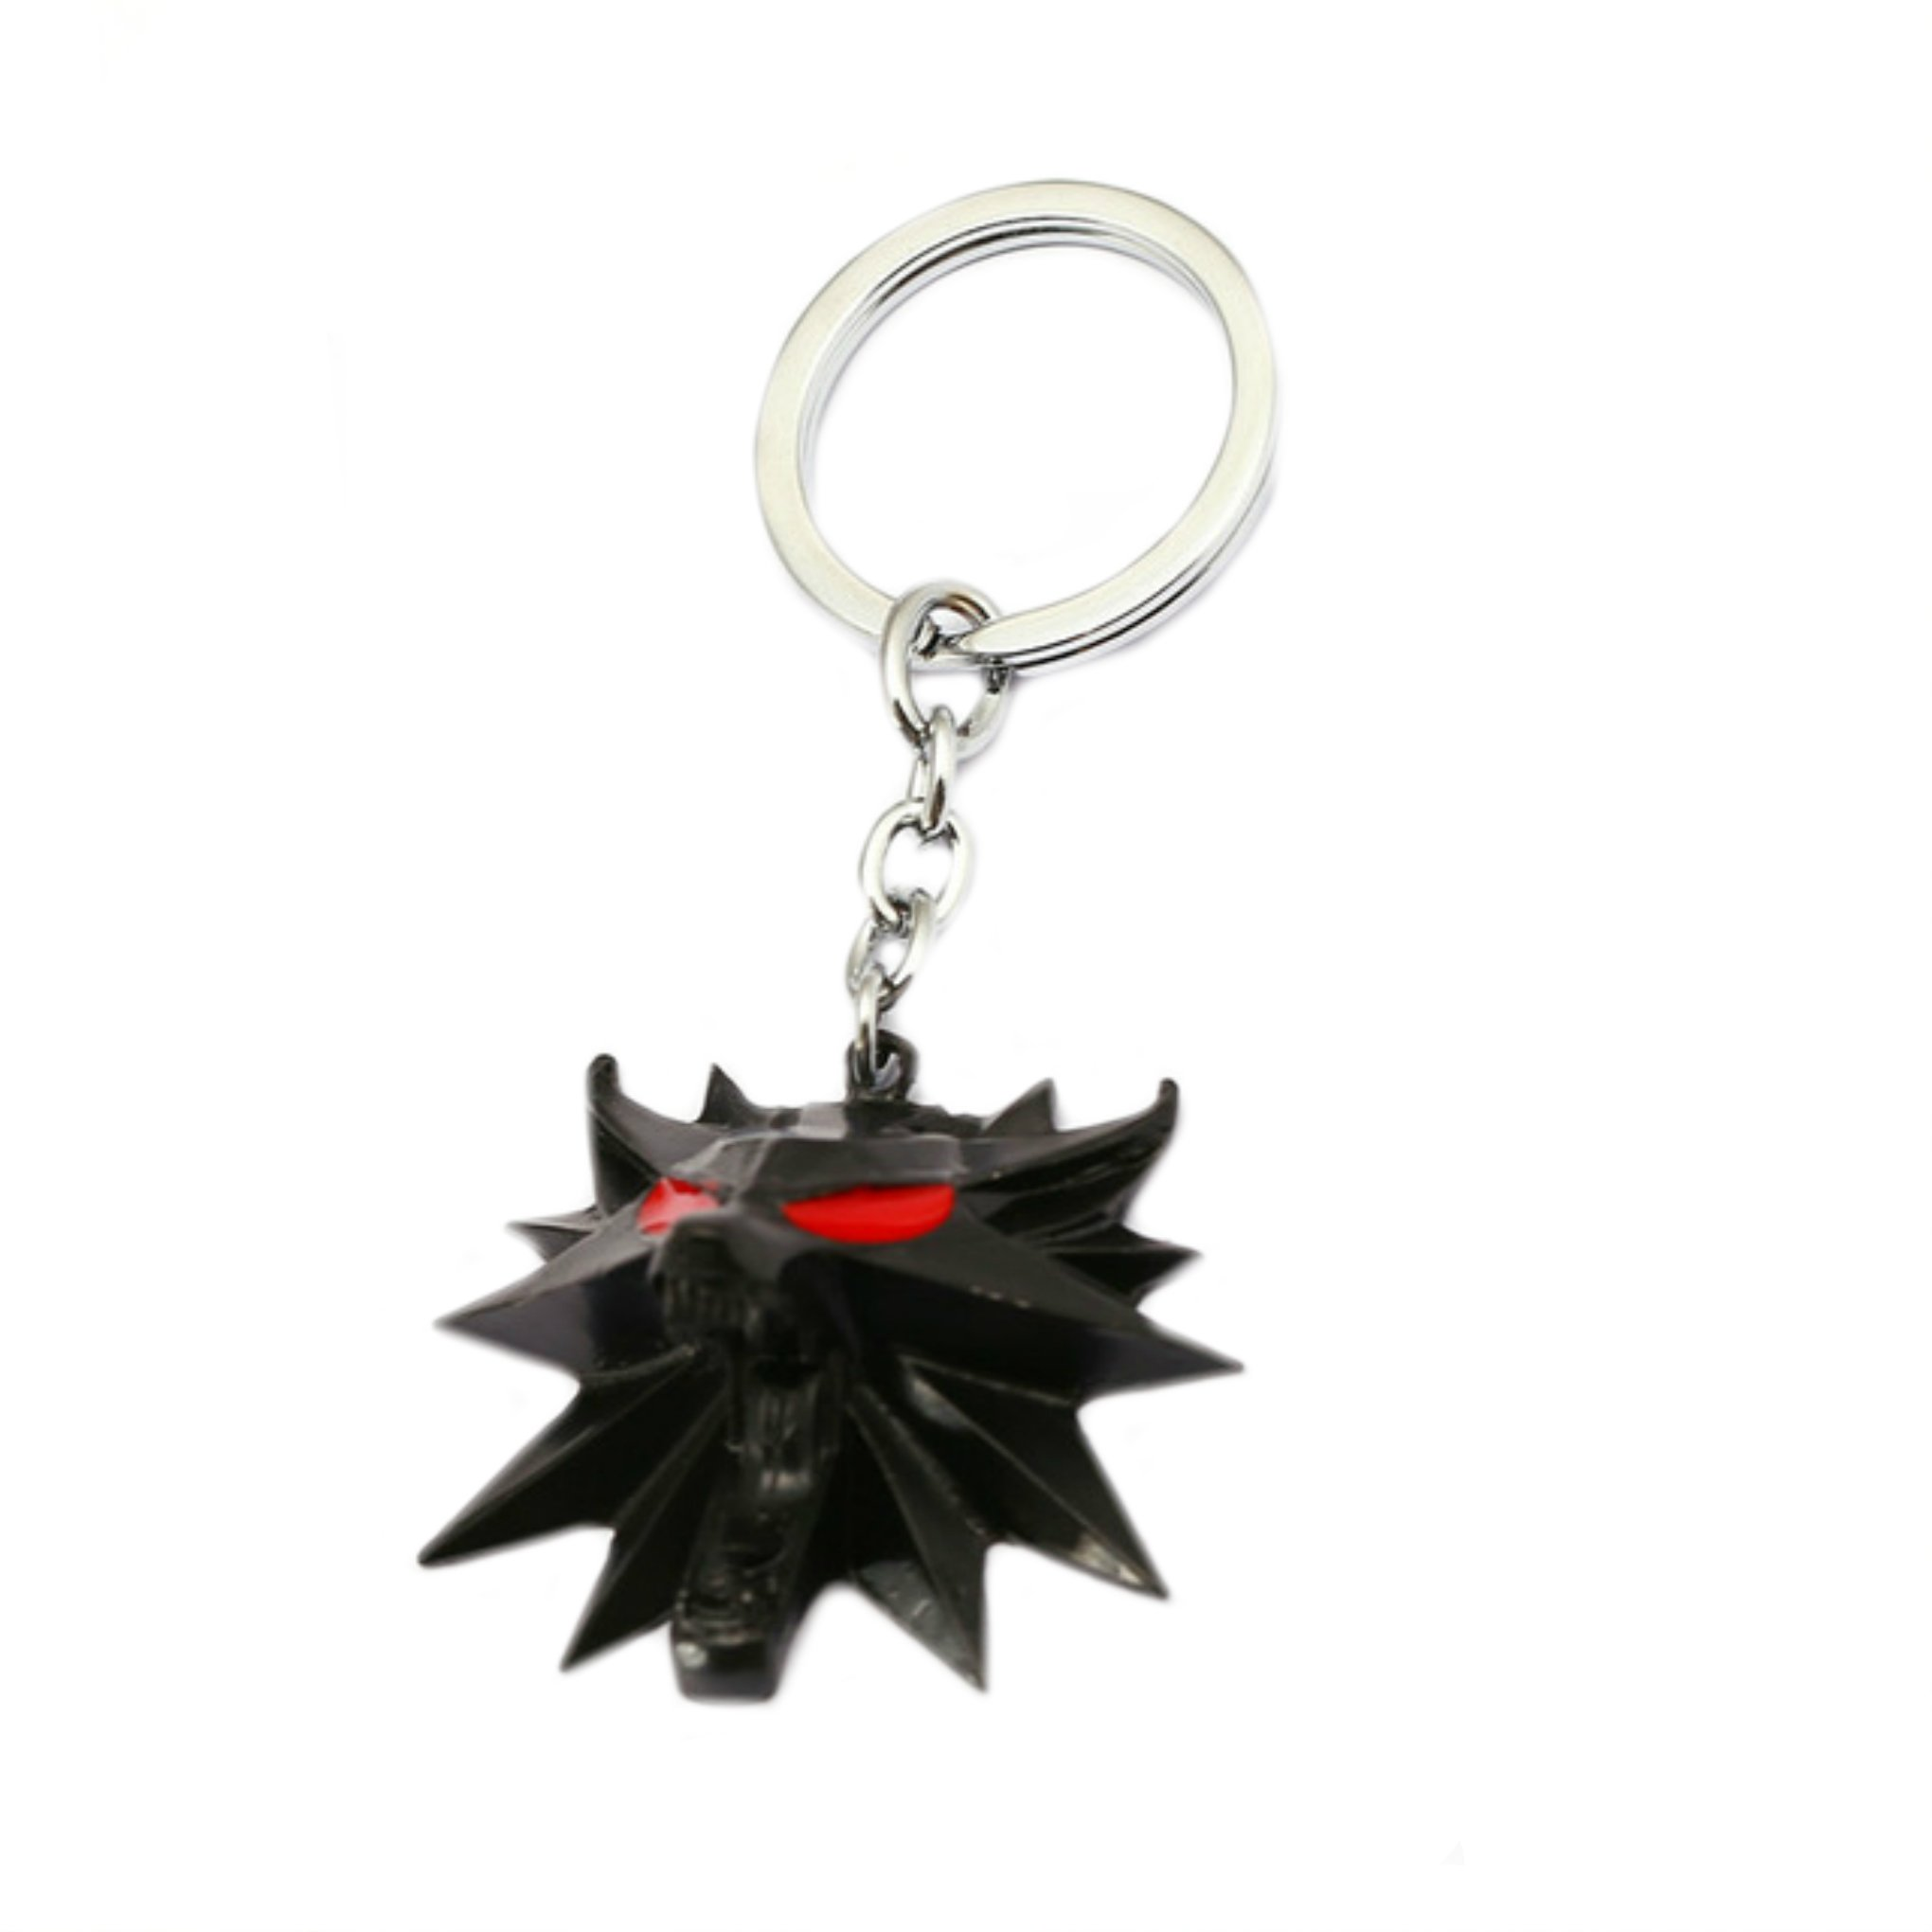 Witcher Keychain Key Ring Video Games PC Console Gaming Auto/Boat House Keys